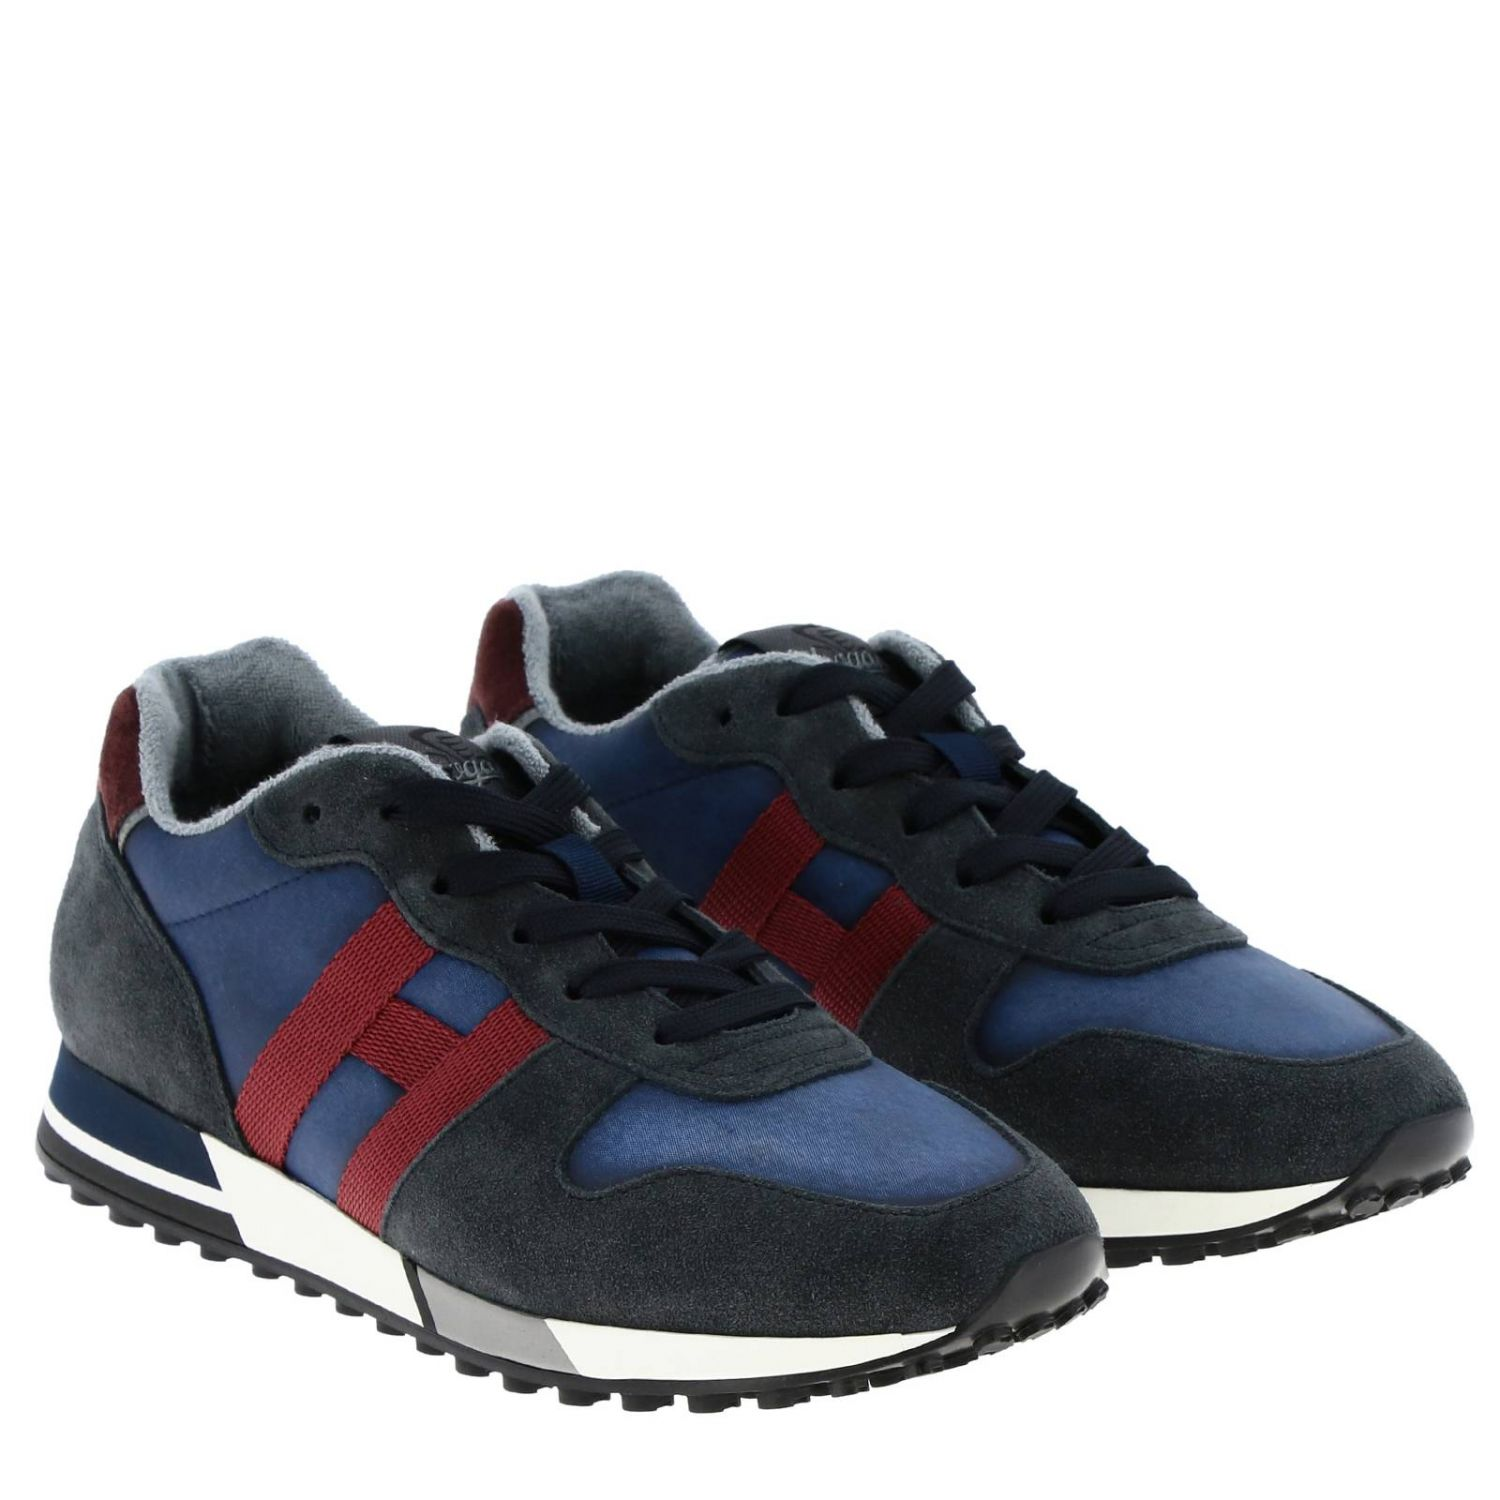 Sneakers 383 split leather and fabric Hogan with monochrome H blue 2